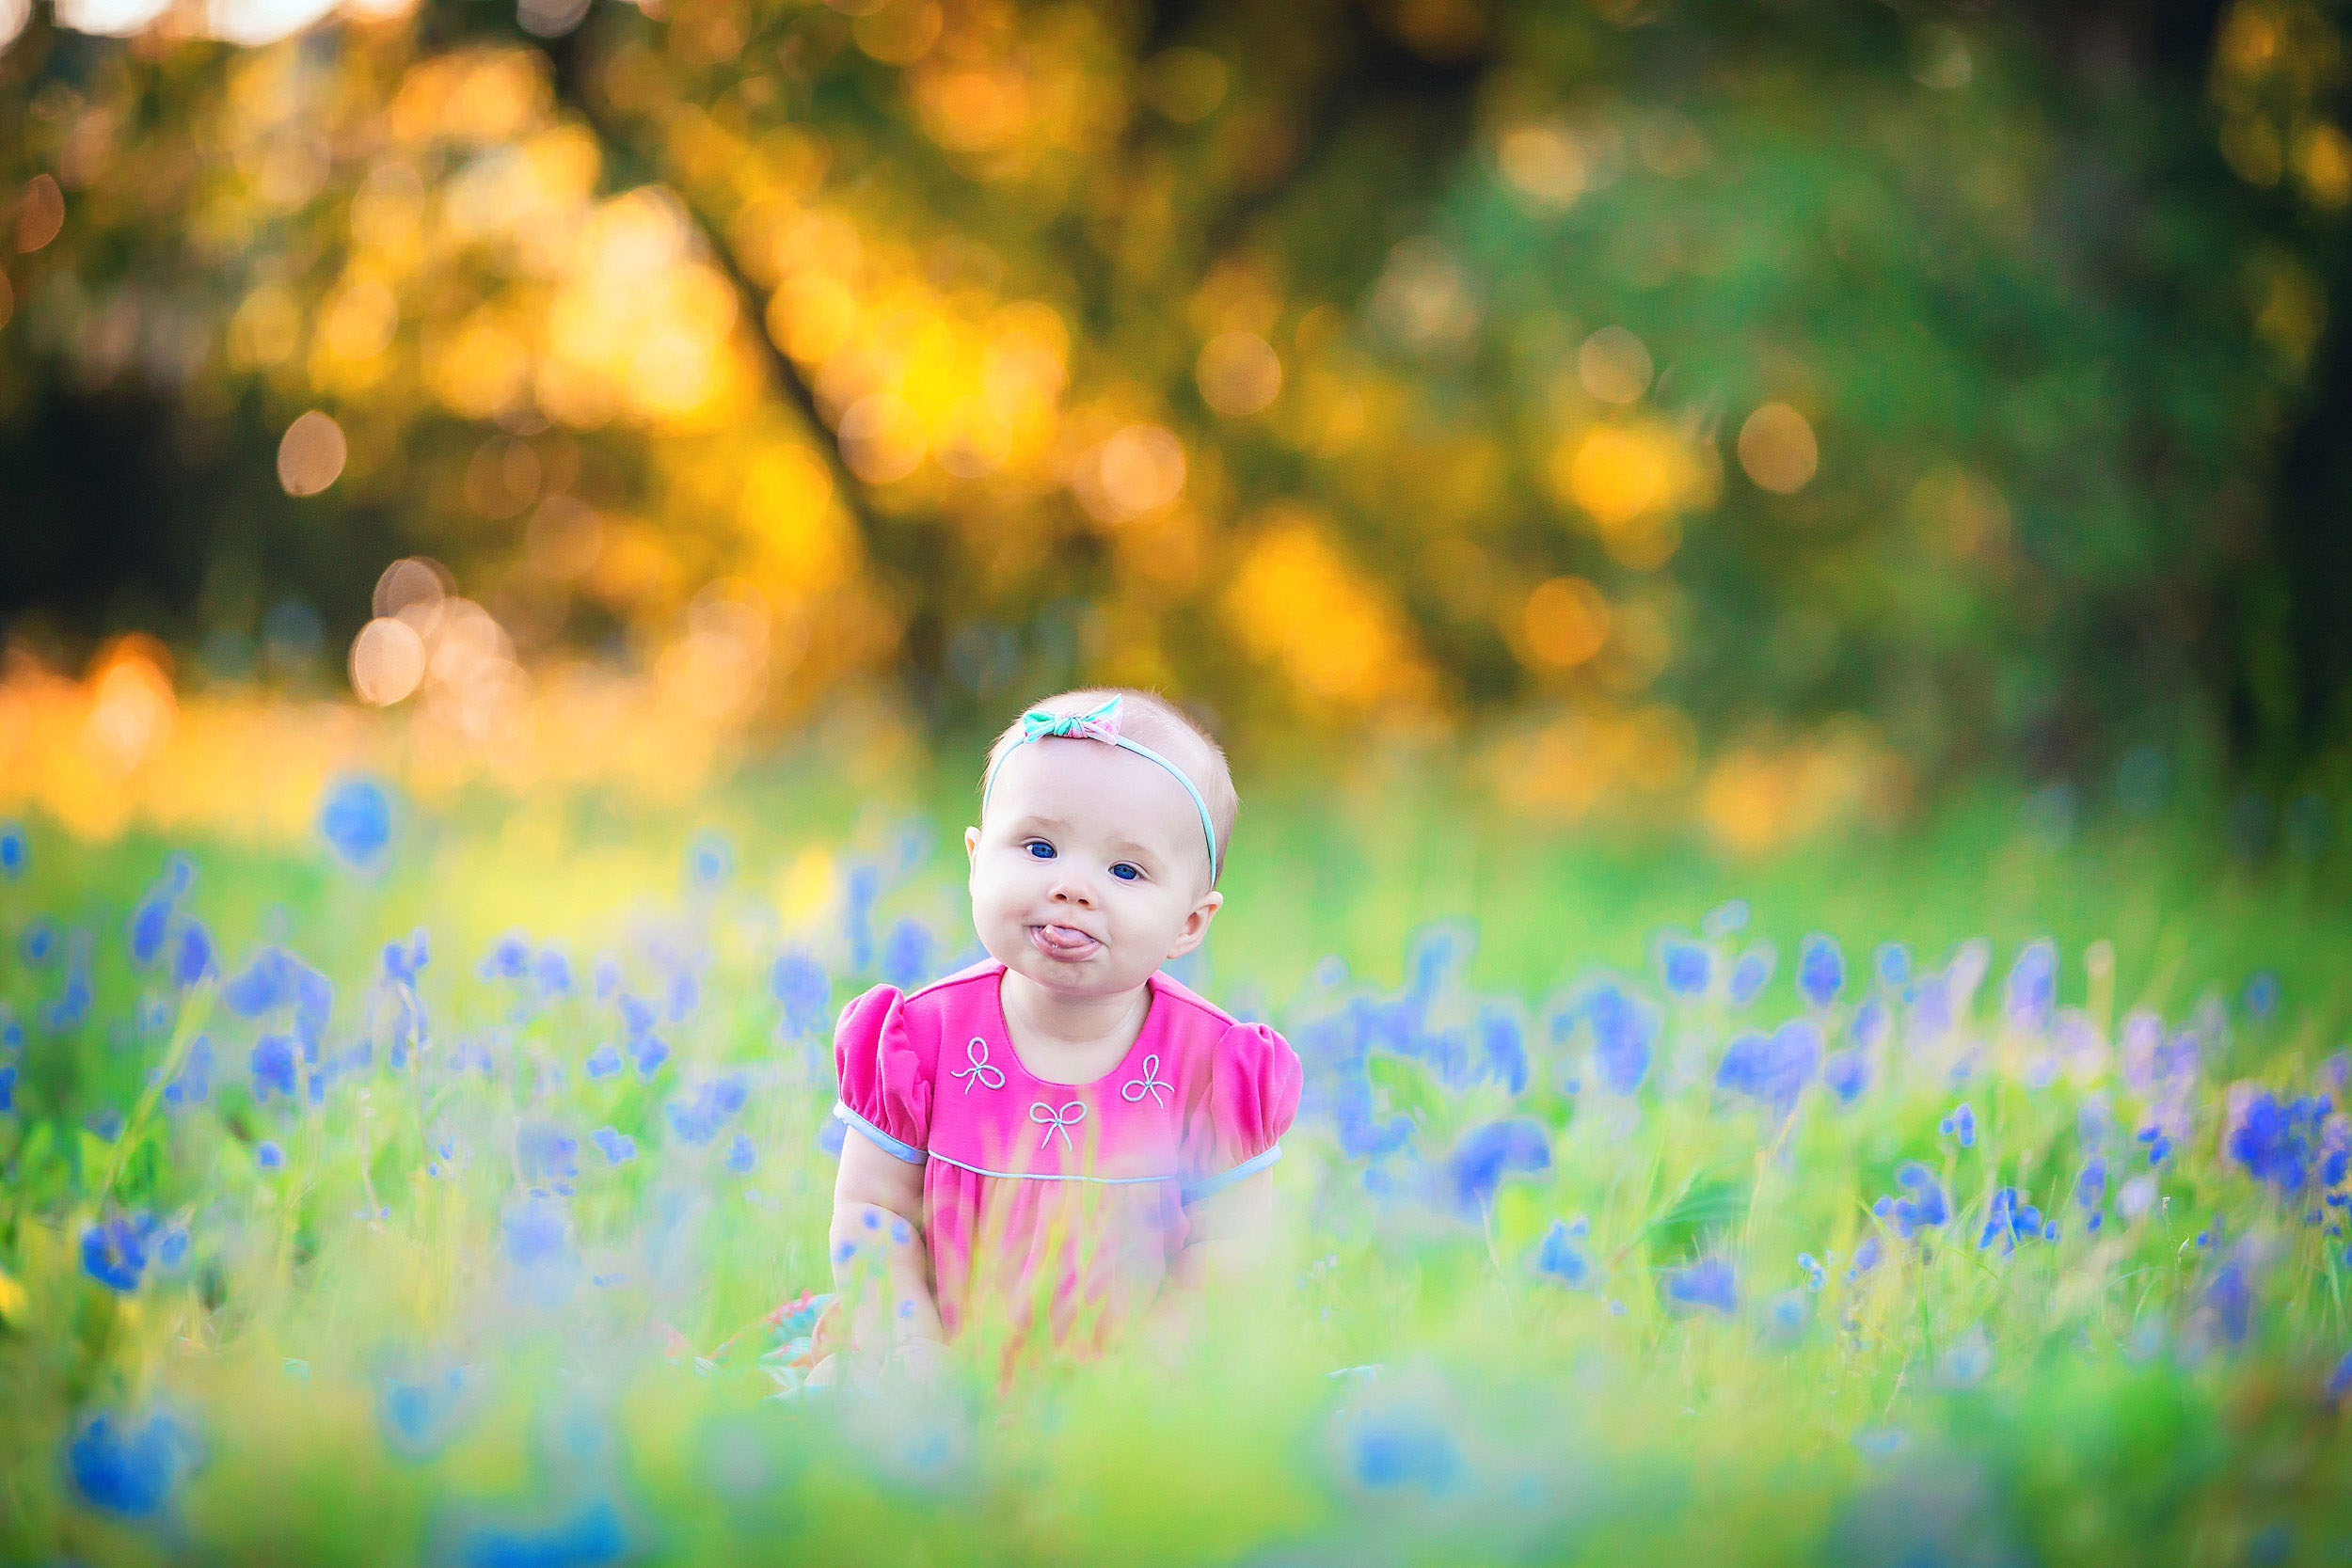 Baby in blubonnets in The Woodlands, Texas by family photographer spryART photography